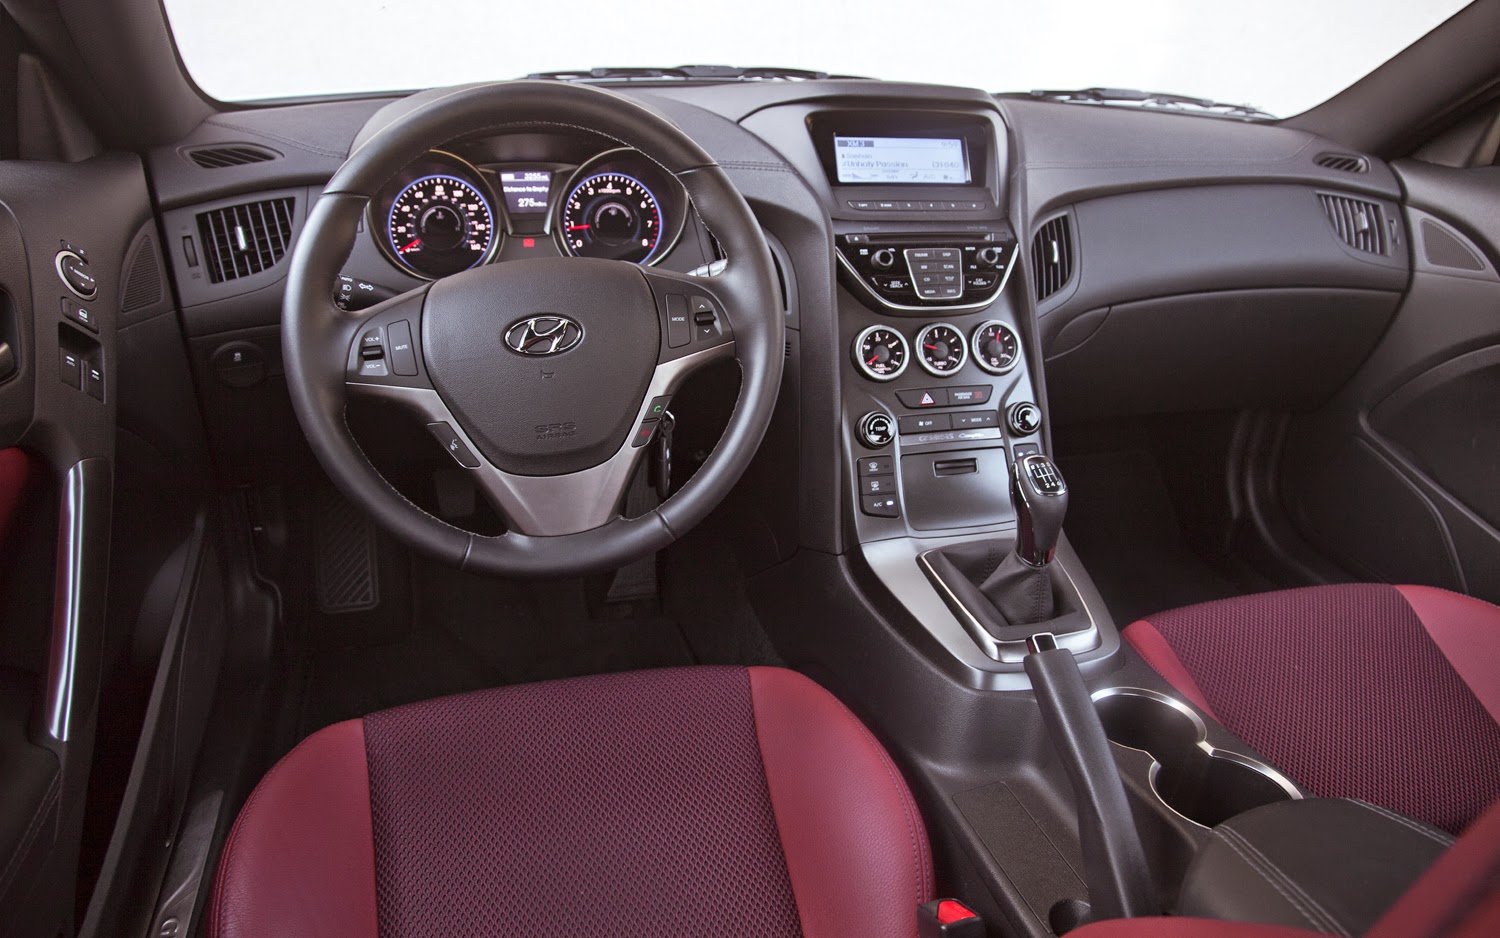 2013/2014 Hyundai Genesis Coupe Interior Design Suggestions